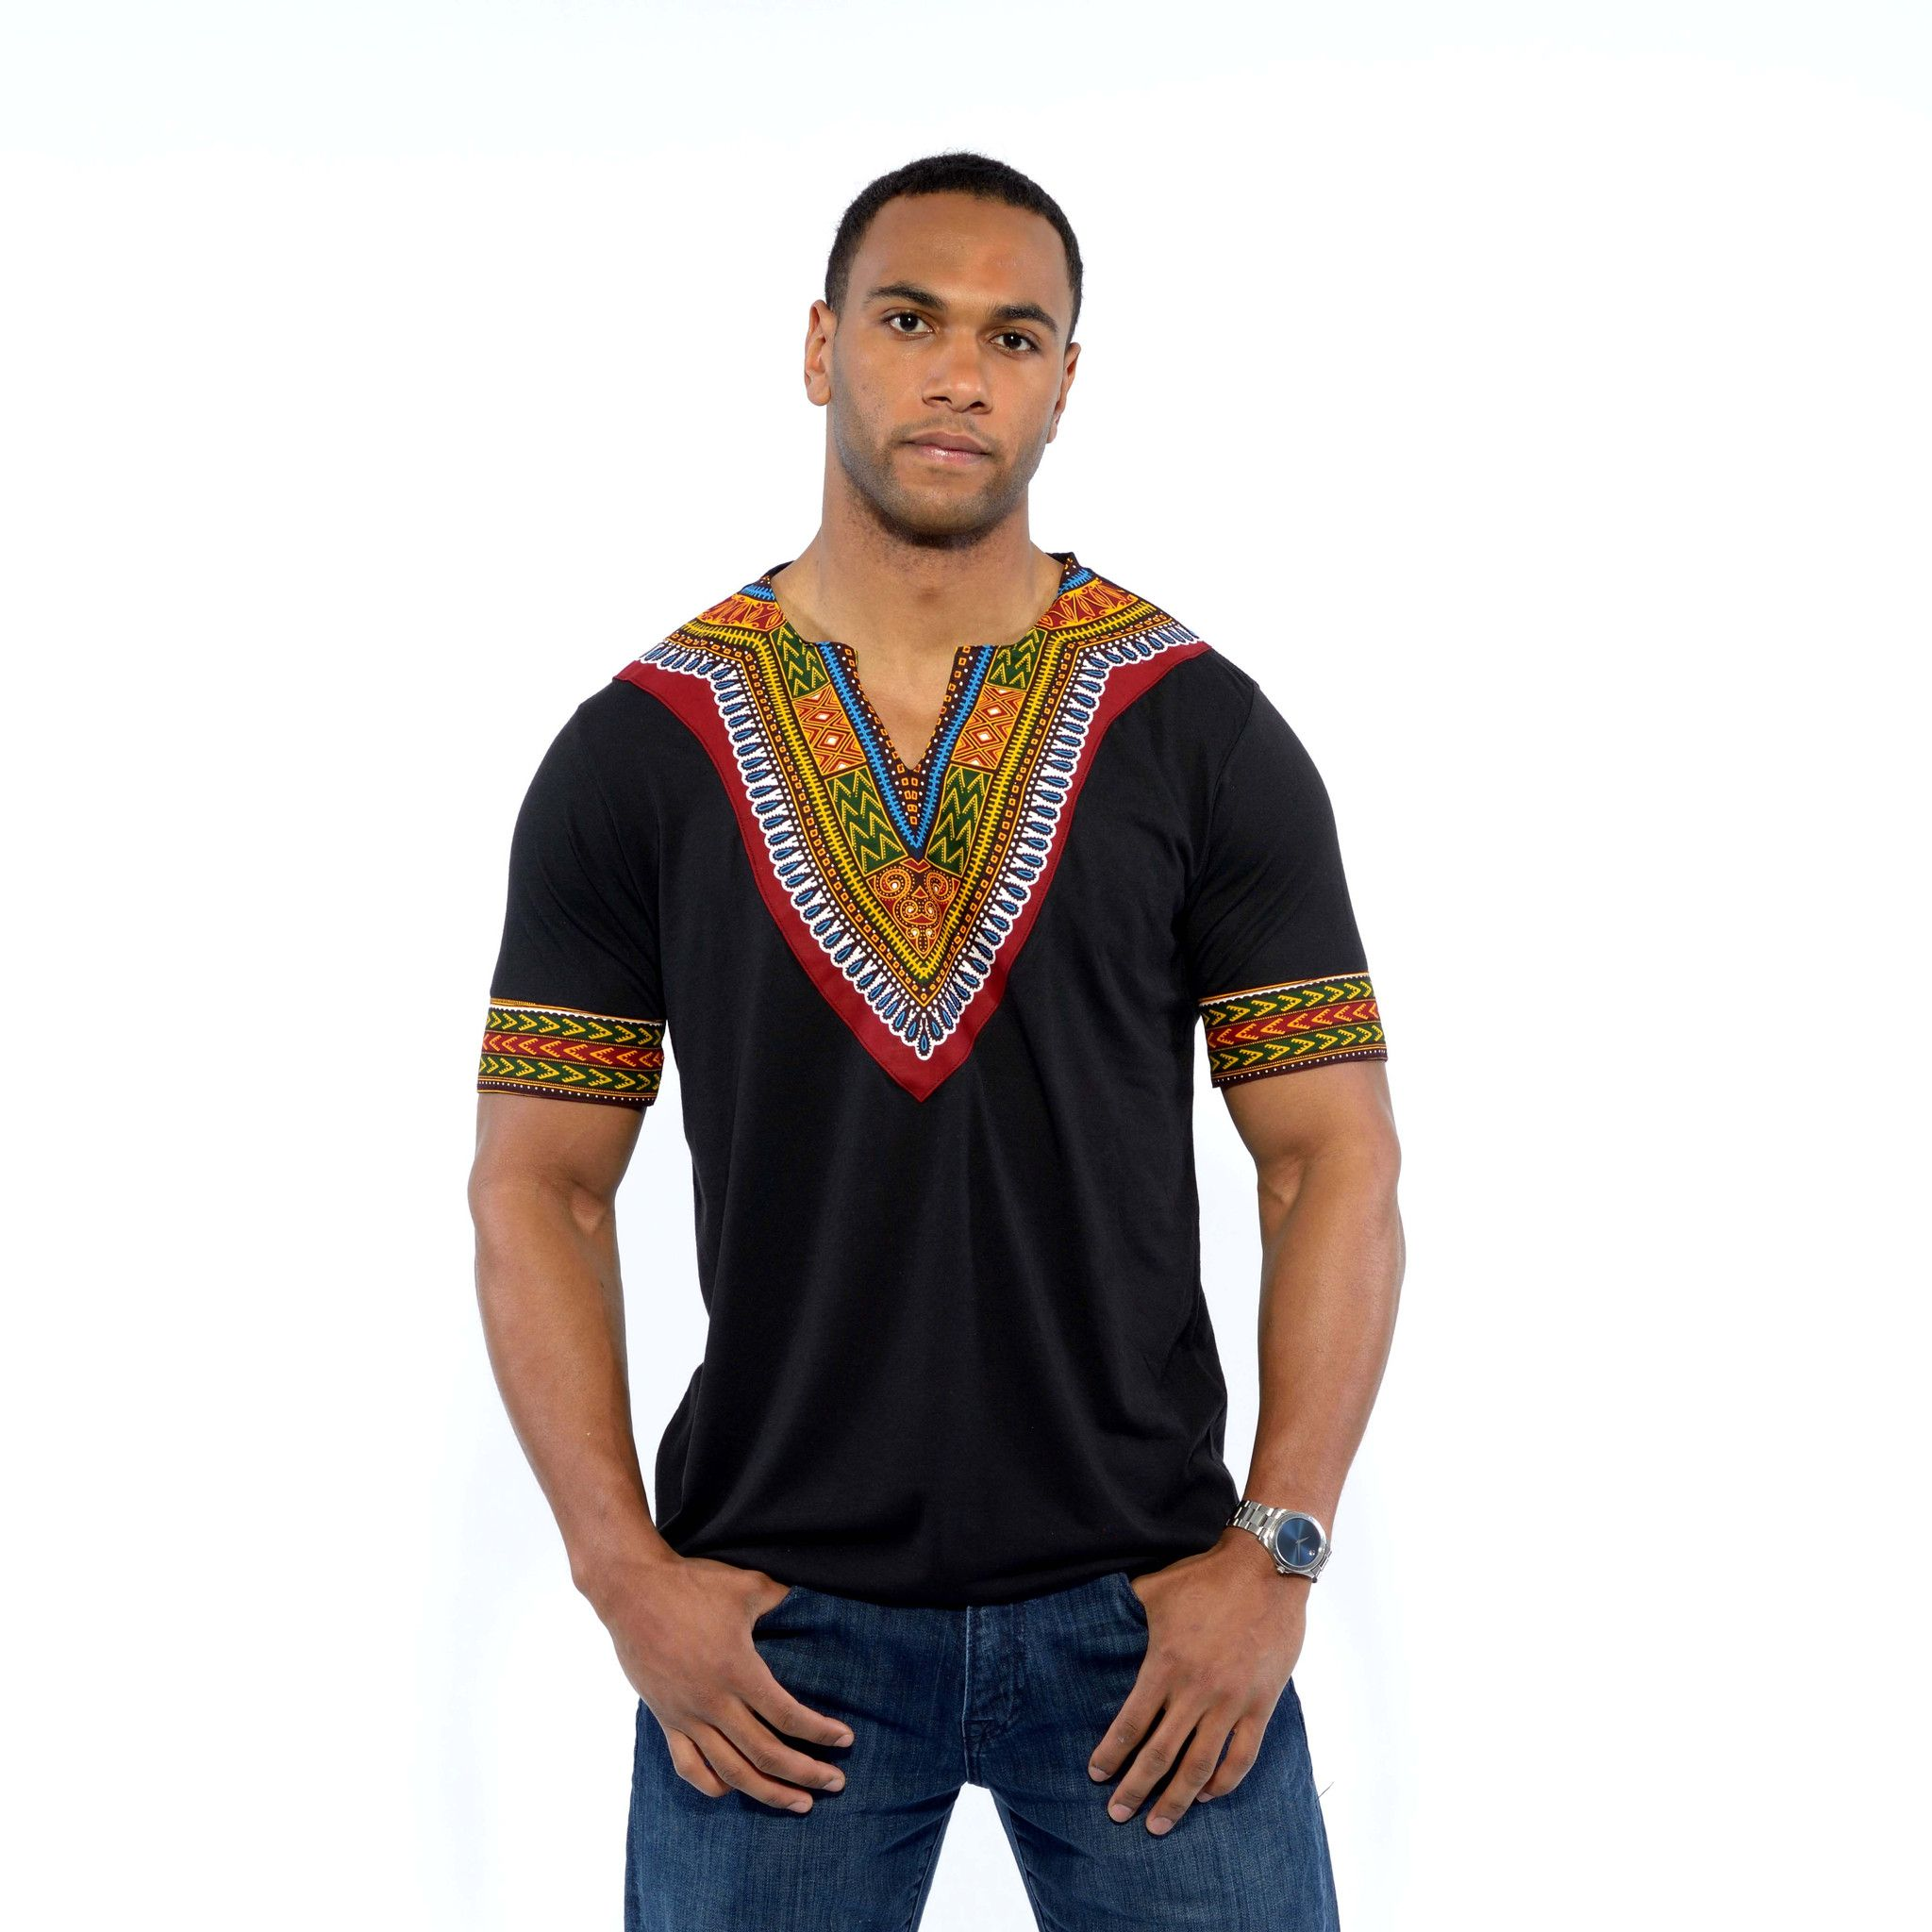 Dashiki - African T-Shirt - Men's Find this Pin and more on Stylish Clothes by Kenny Vaughan. JEKKAH the home of african print shirts made from wax print fabrics We Dare You To Find Better Fashion Advice ** Continue with the details at the image link.